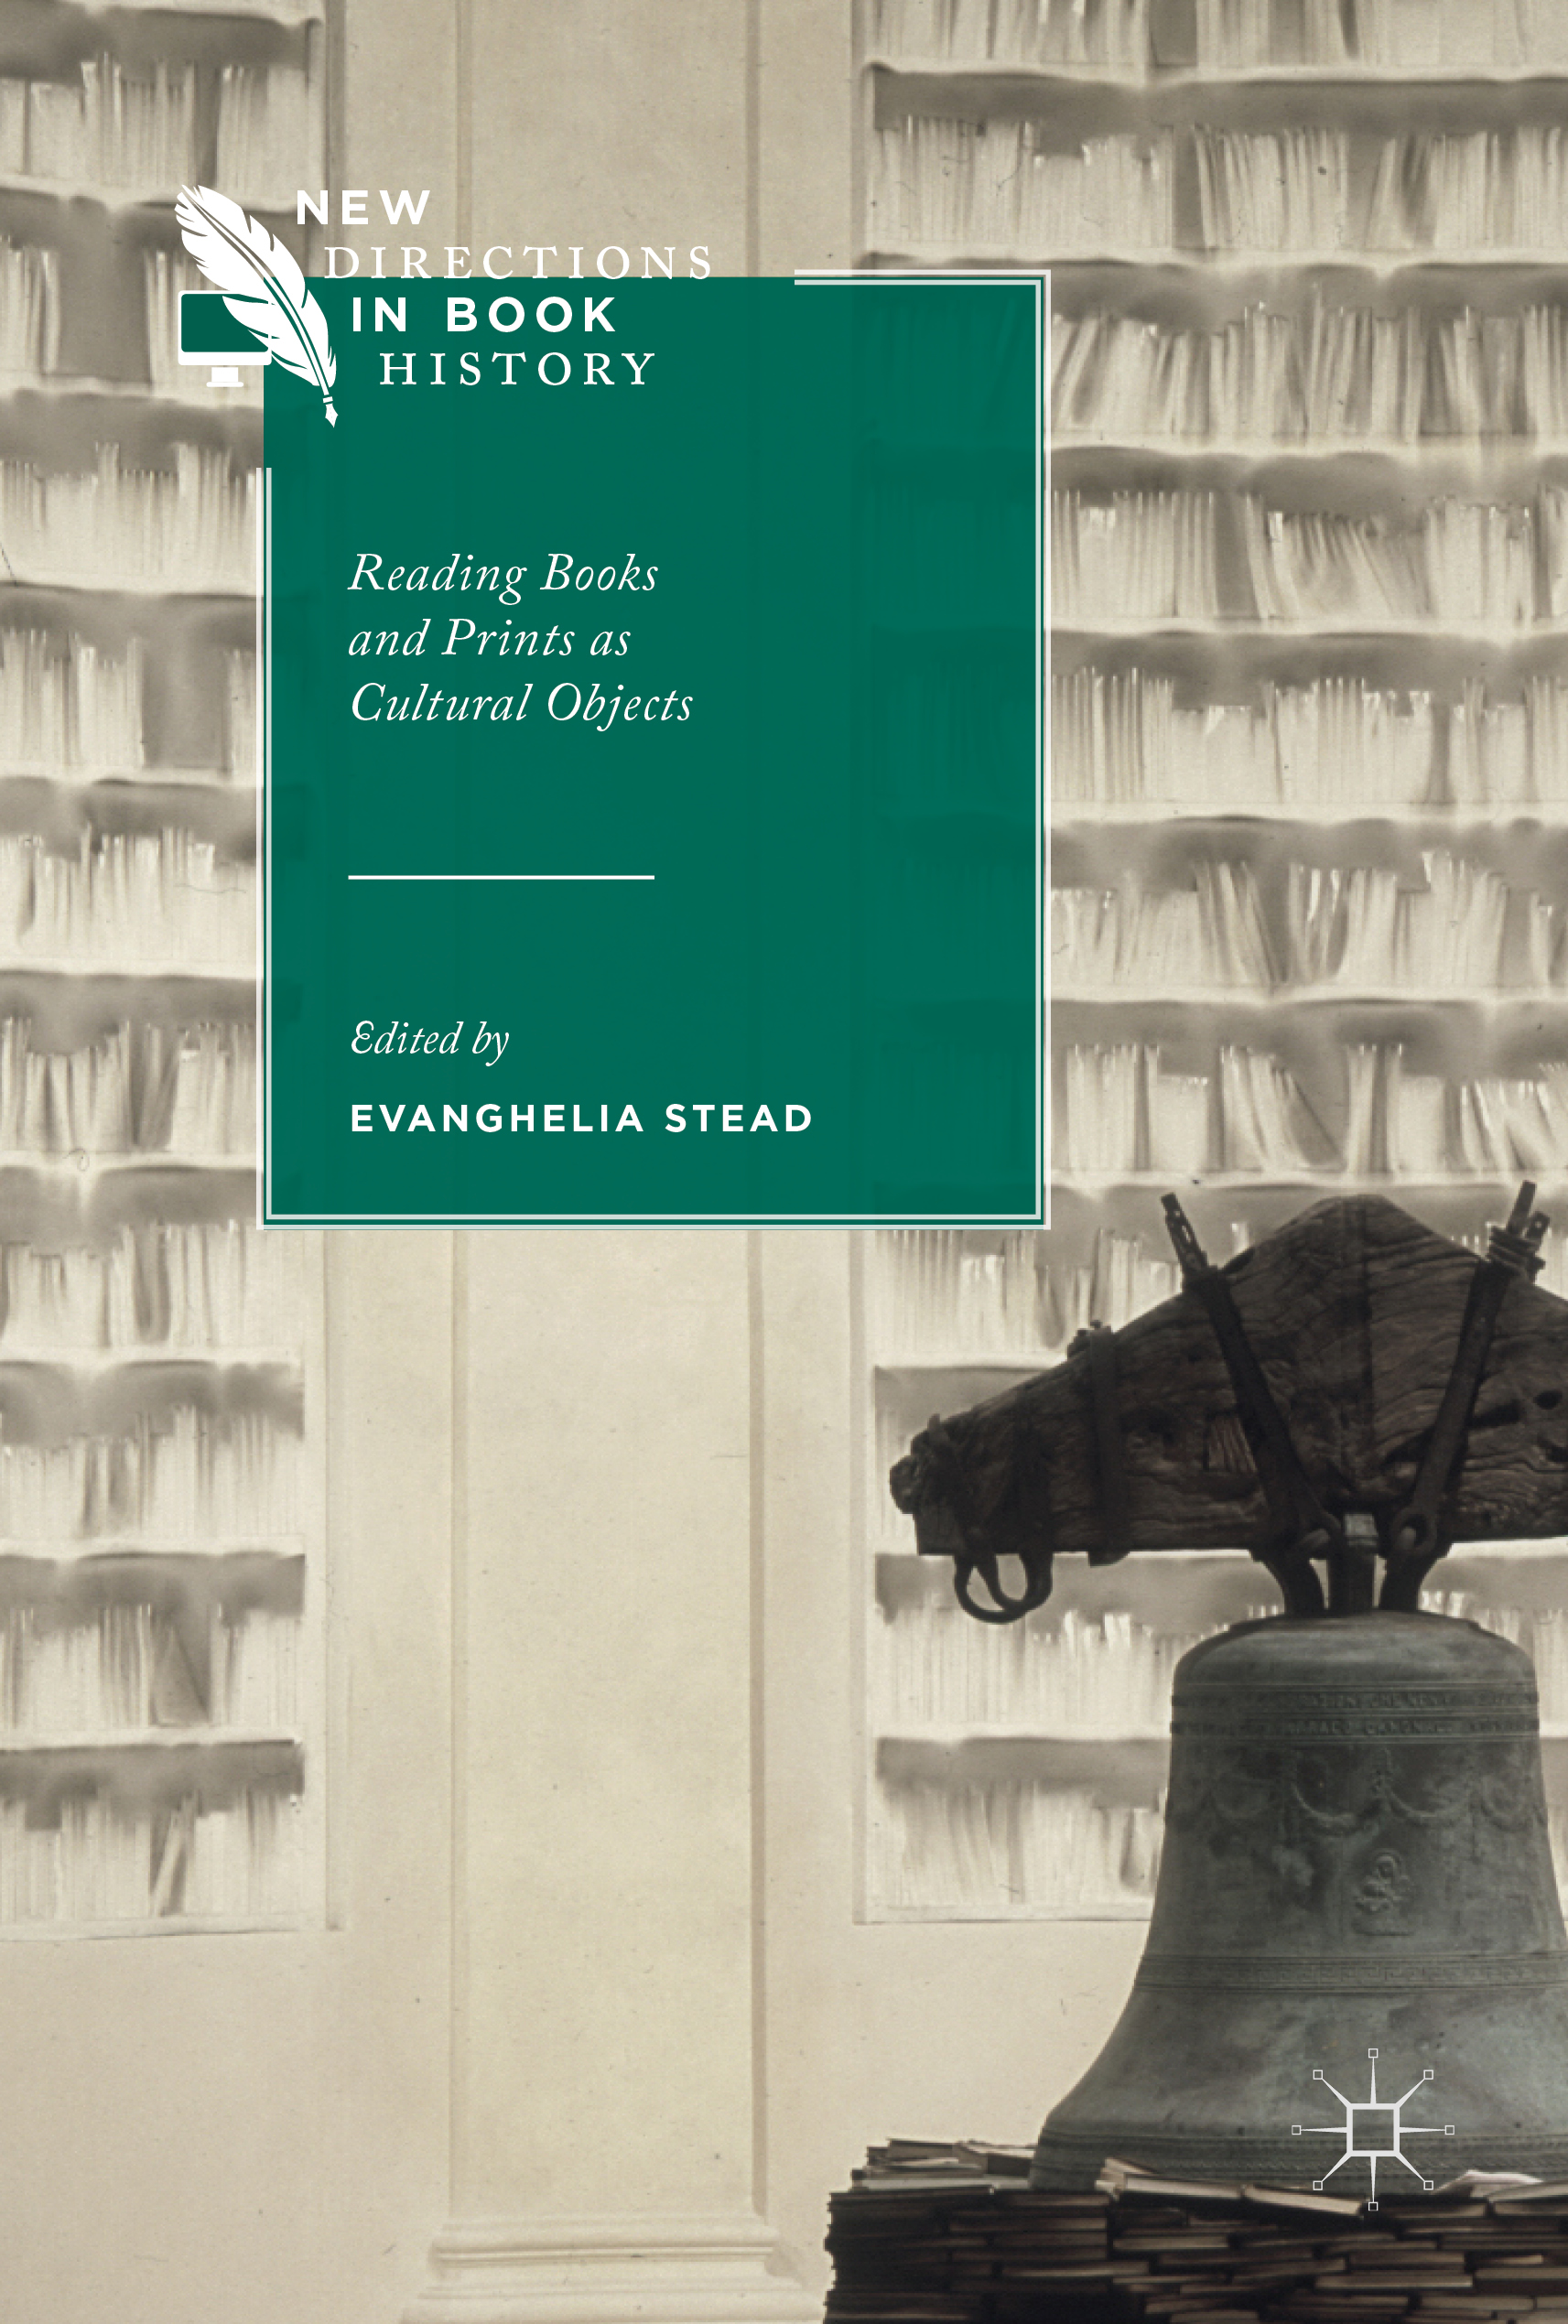 E. Stead éd., Reading Books and Prints as Cultural Objects